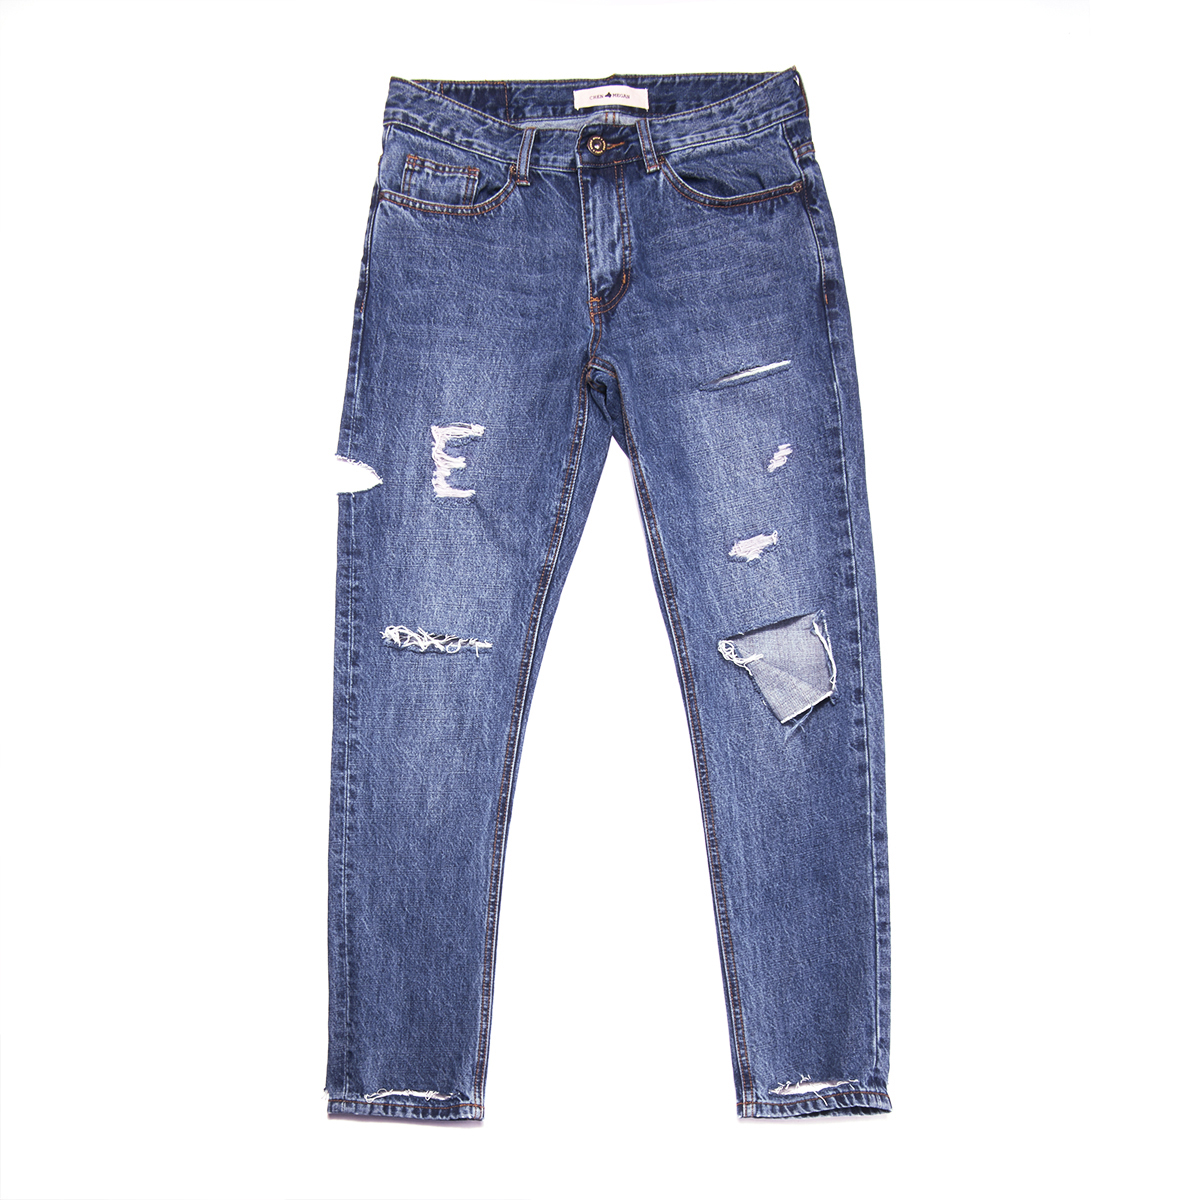 HELLEN&WOODY/H&W Mens Ripped Skinny Destroyed fit Jeans Blue Long Pants with Holes 1608